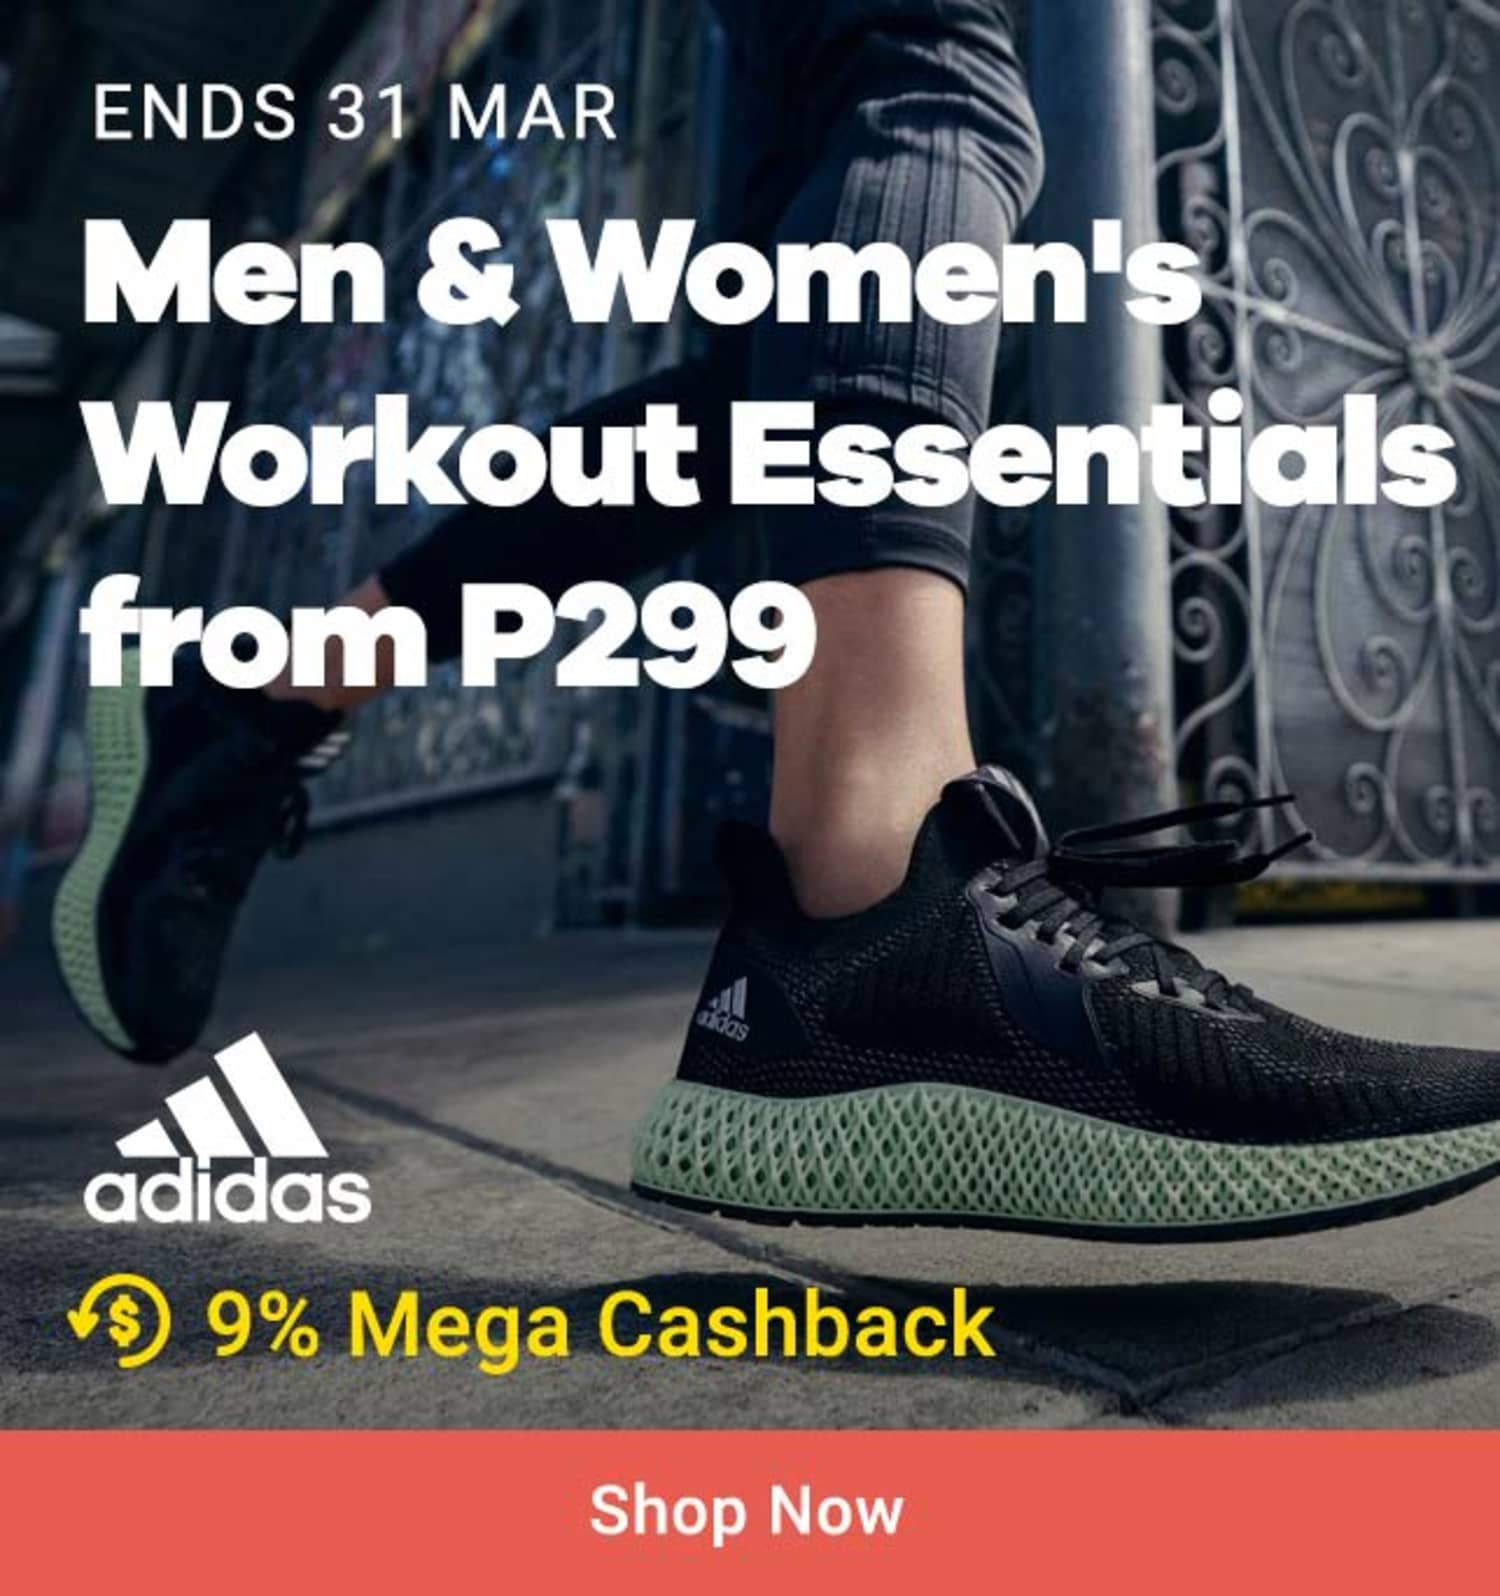 Adidas: Men & Women's Workout Essentials from P299